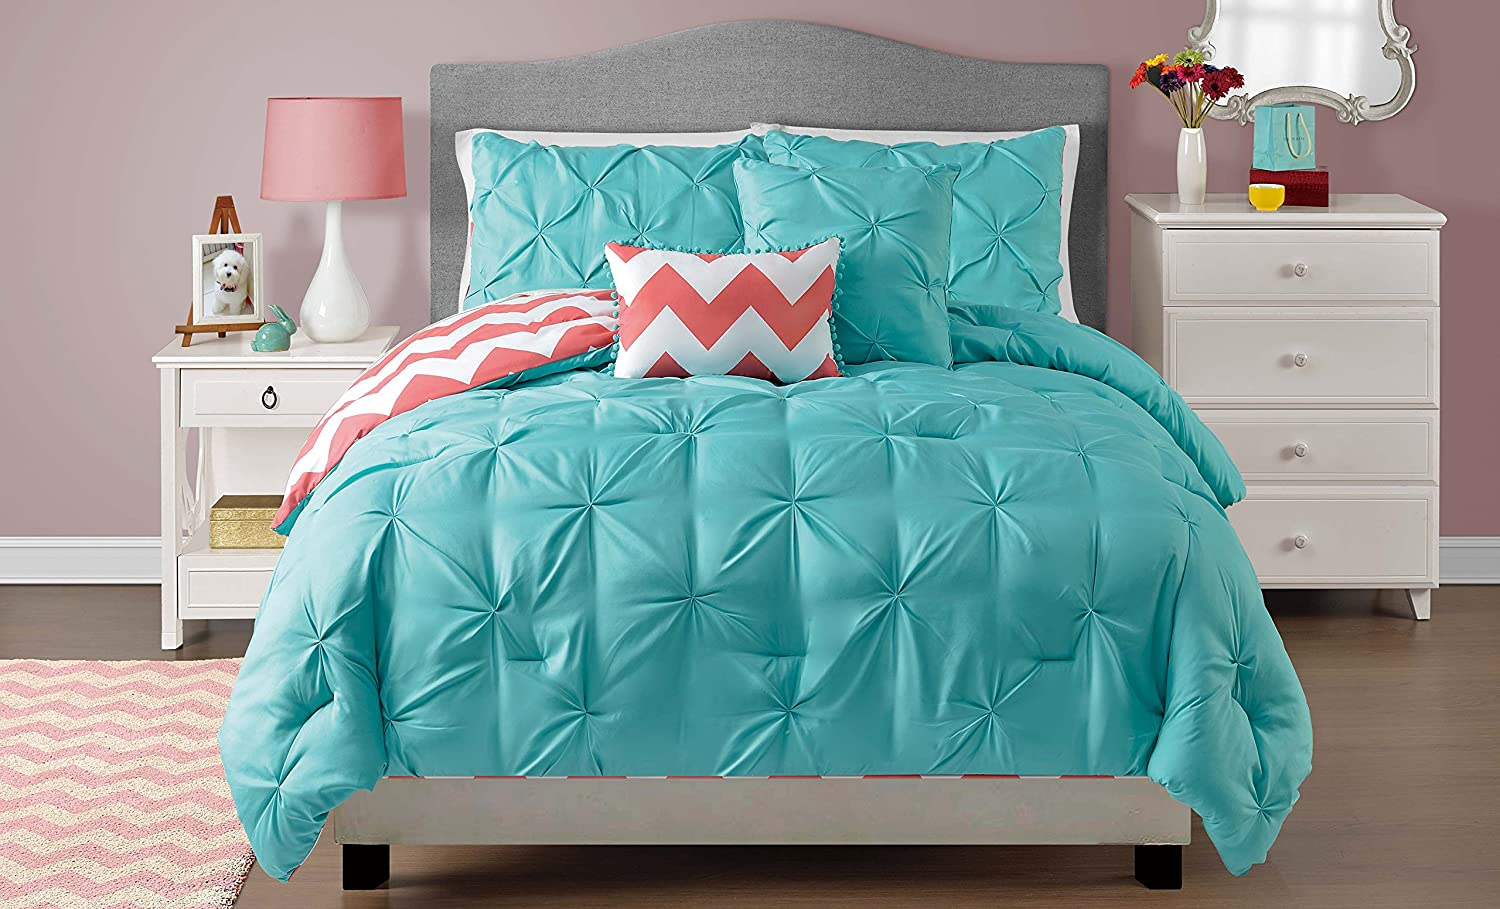 VCNY 5 Piece Sophia Reversible Comforter Set, Full/Queen, Turquoise